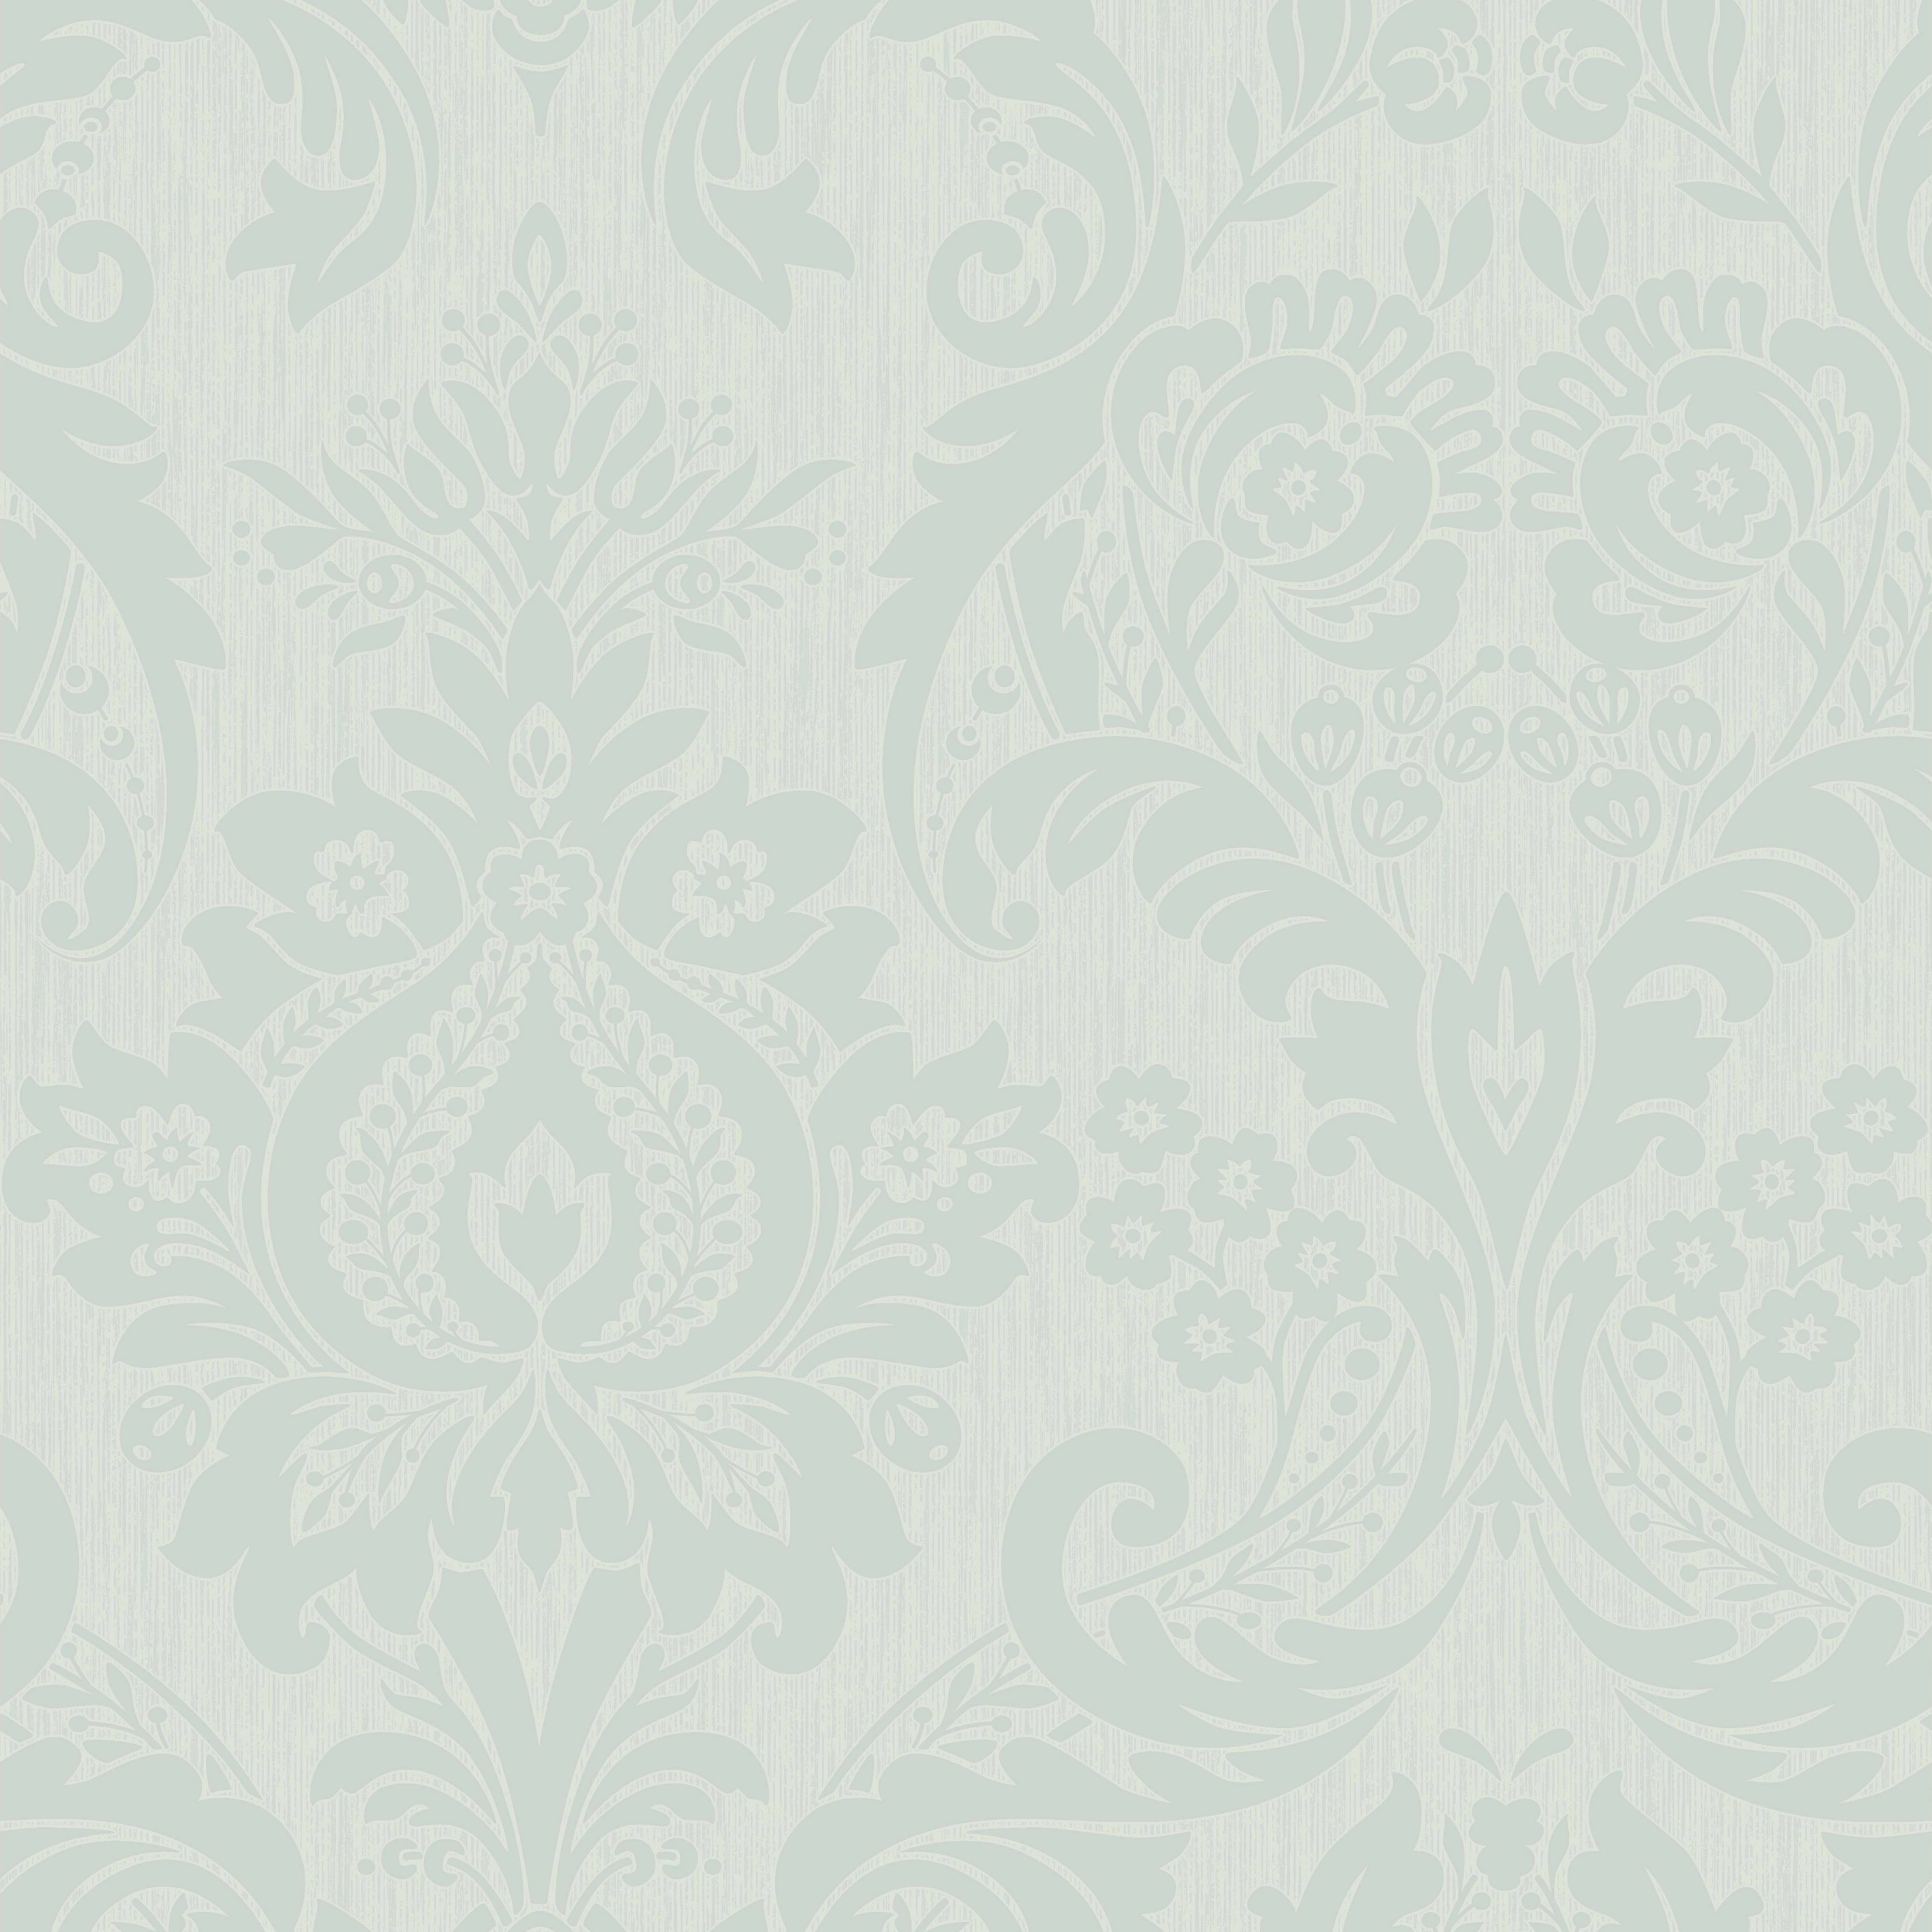 Top Wallpaper Grey Duck Egg Blue - 5011583171686_03c  Perfect Image Reference_21393.com/is/image/Kingfisher/5011583171686_03c